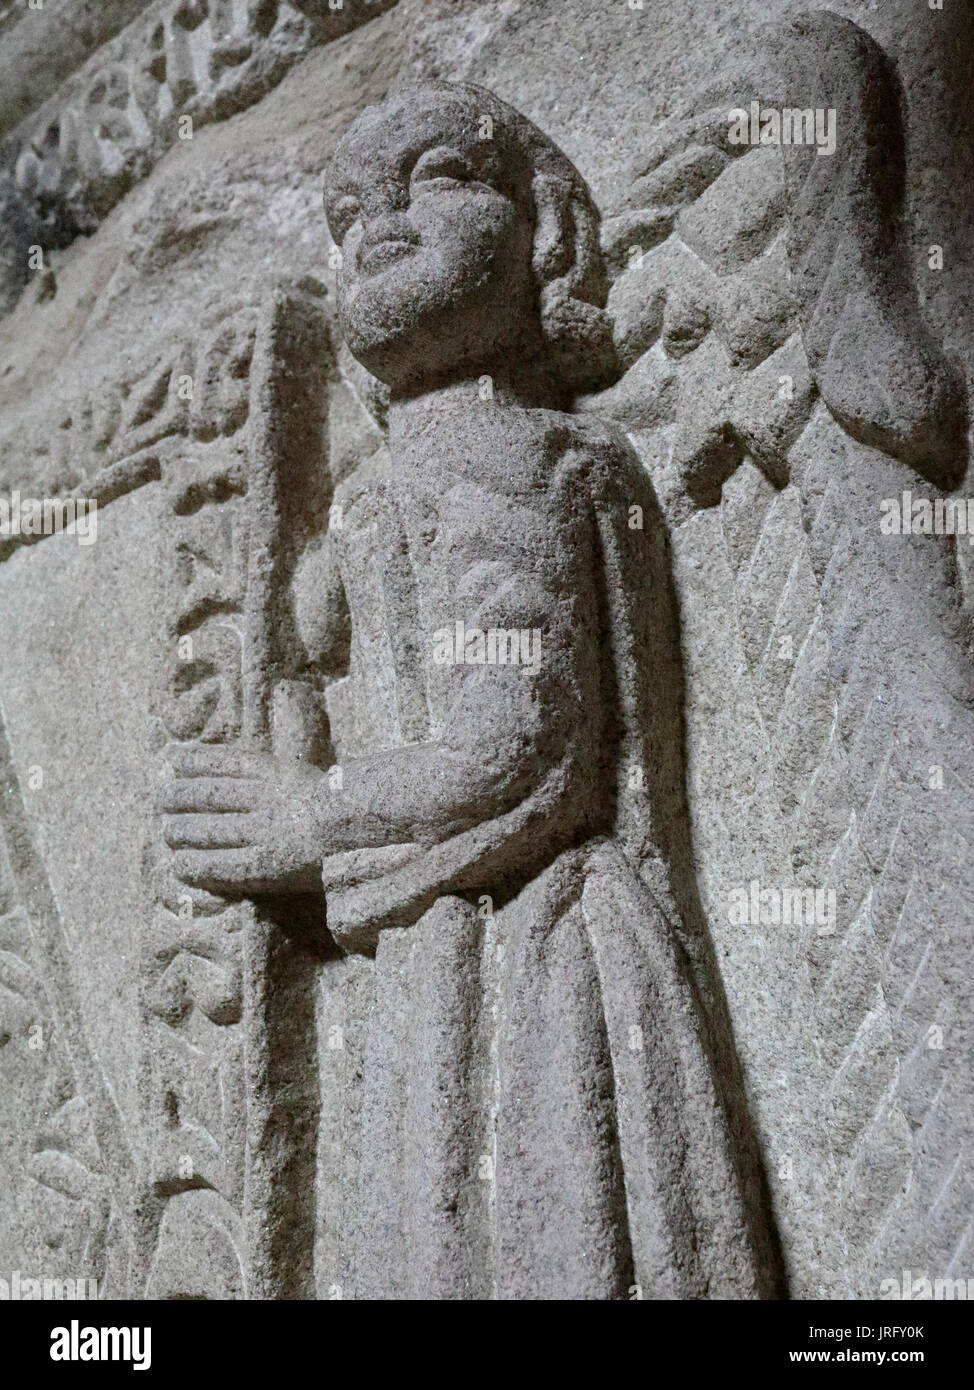 A close view of a stone low relief of an angel holding a shield - Stock Image